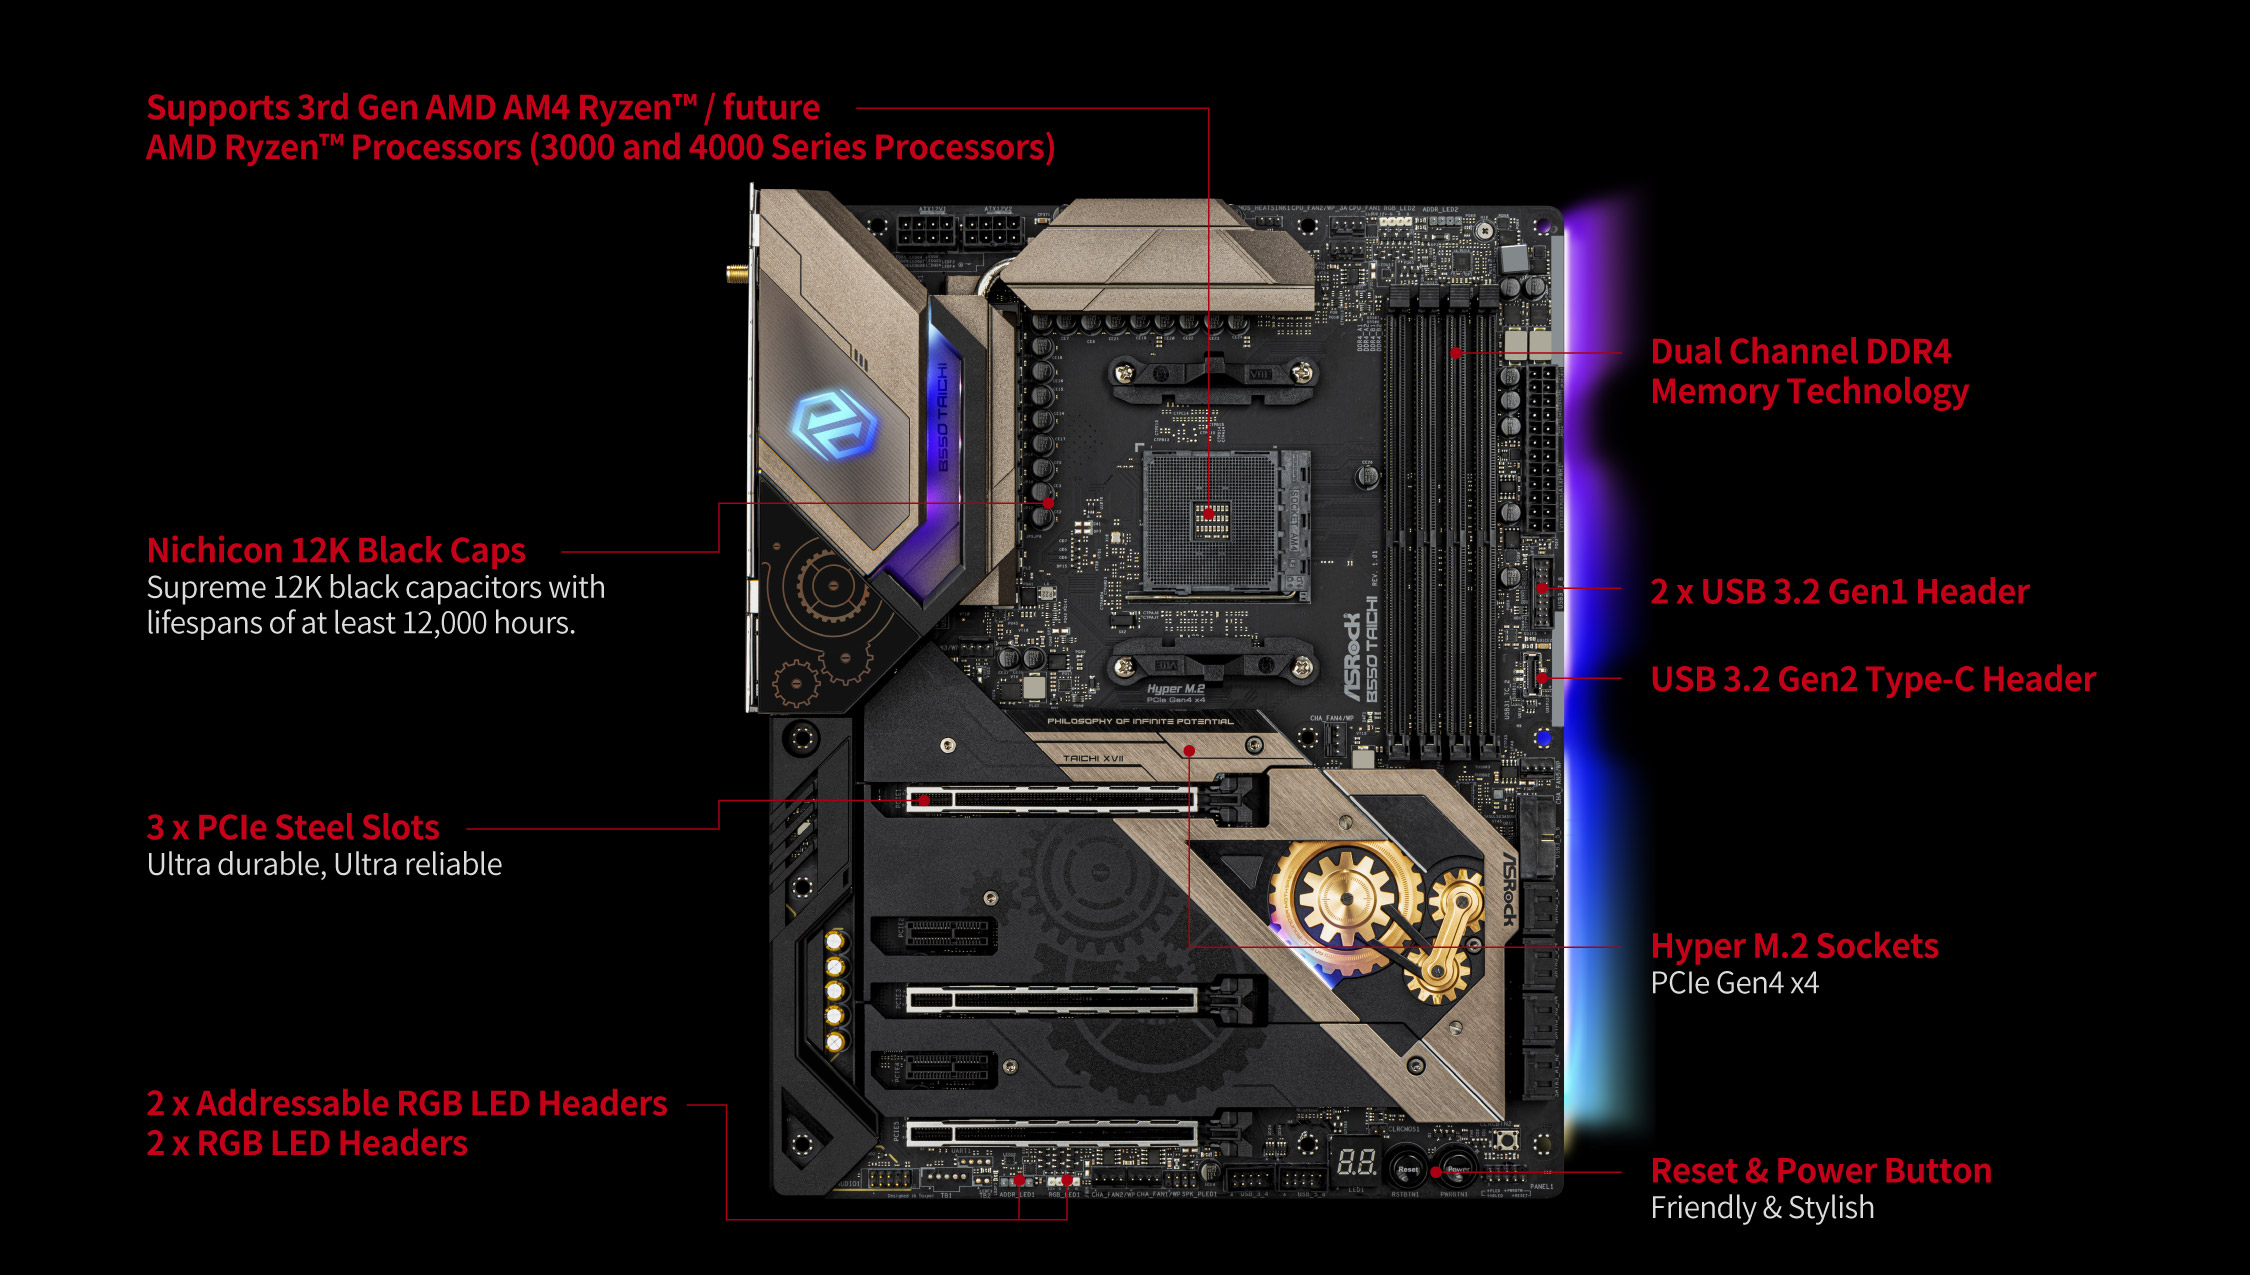 front of the motherboard